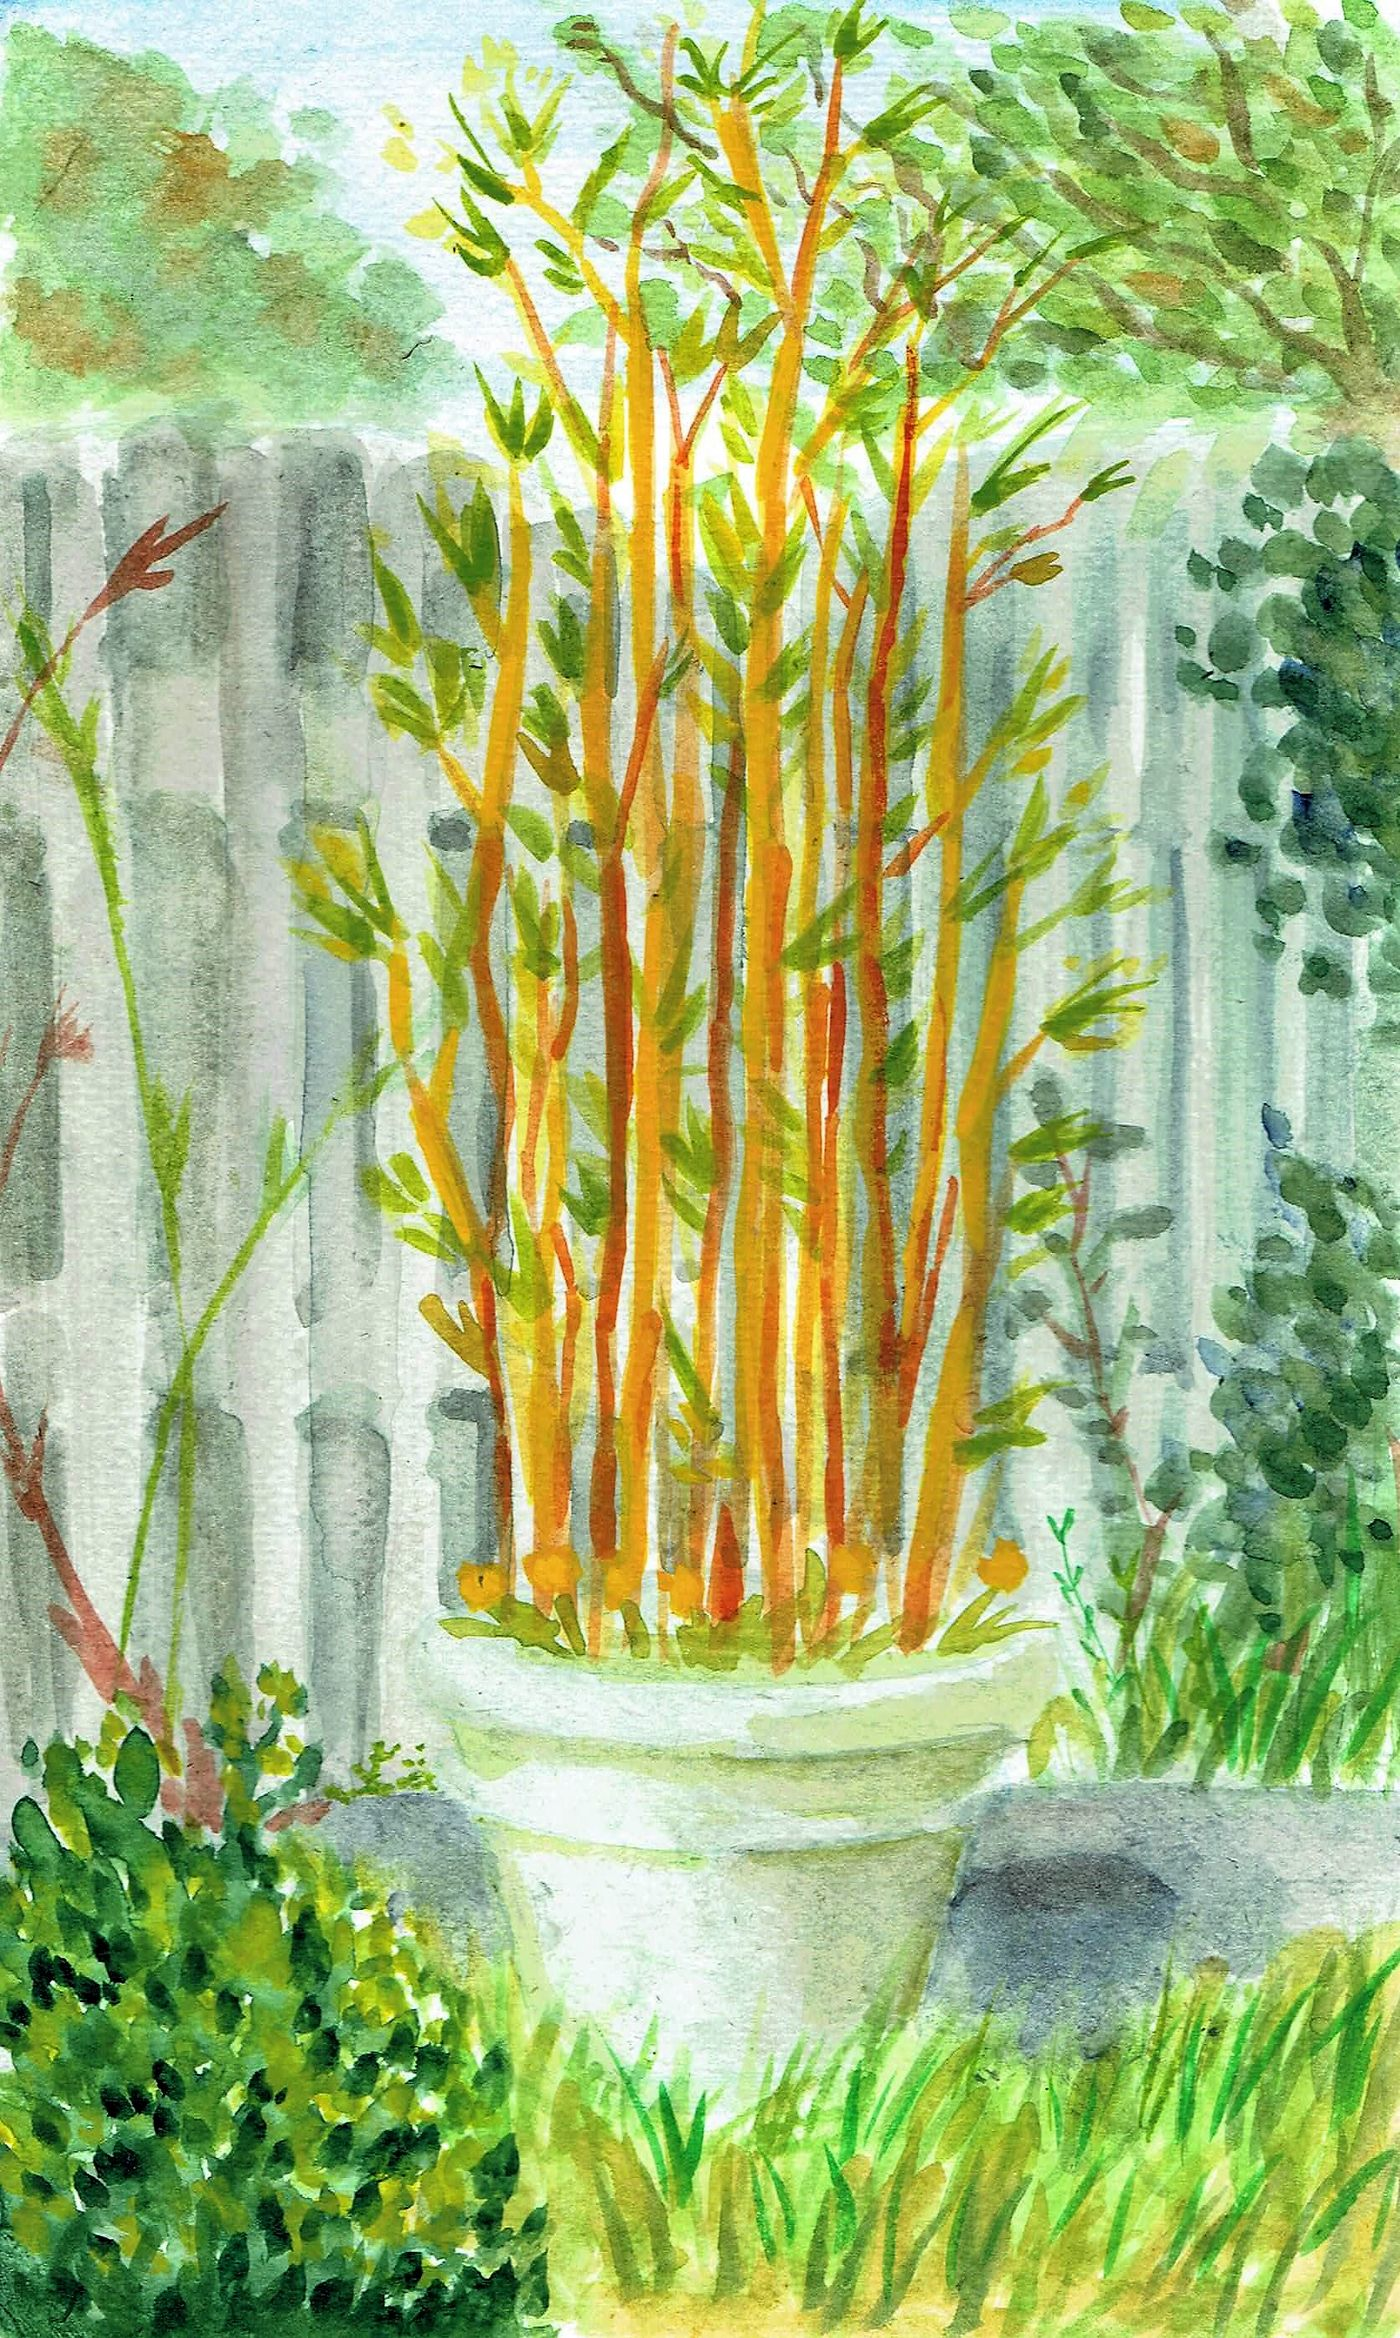 Watercolour 1 Salomebusurashvili